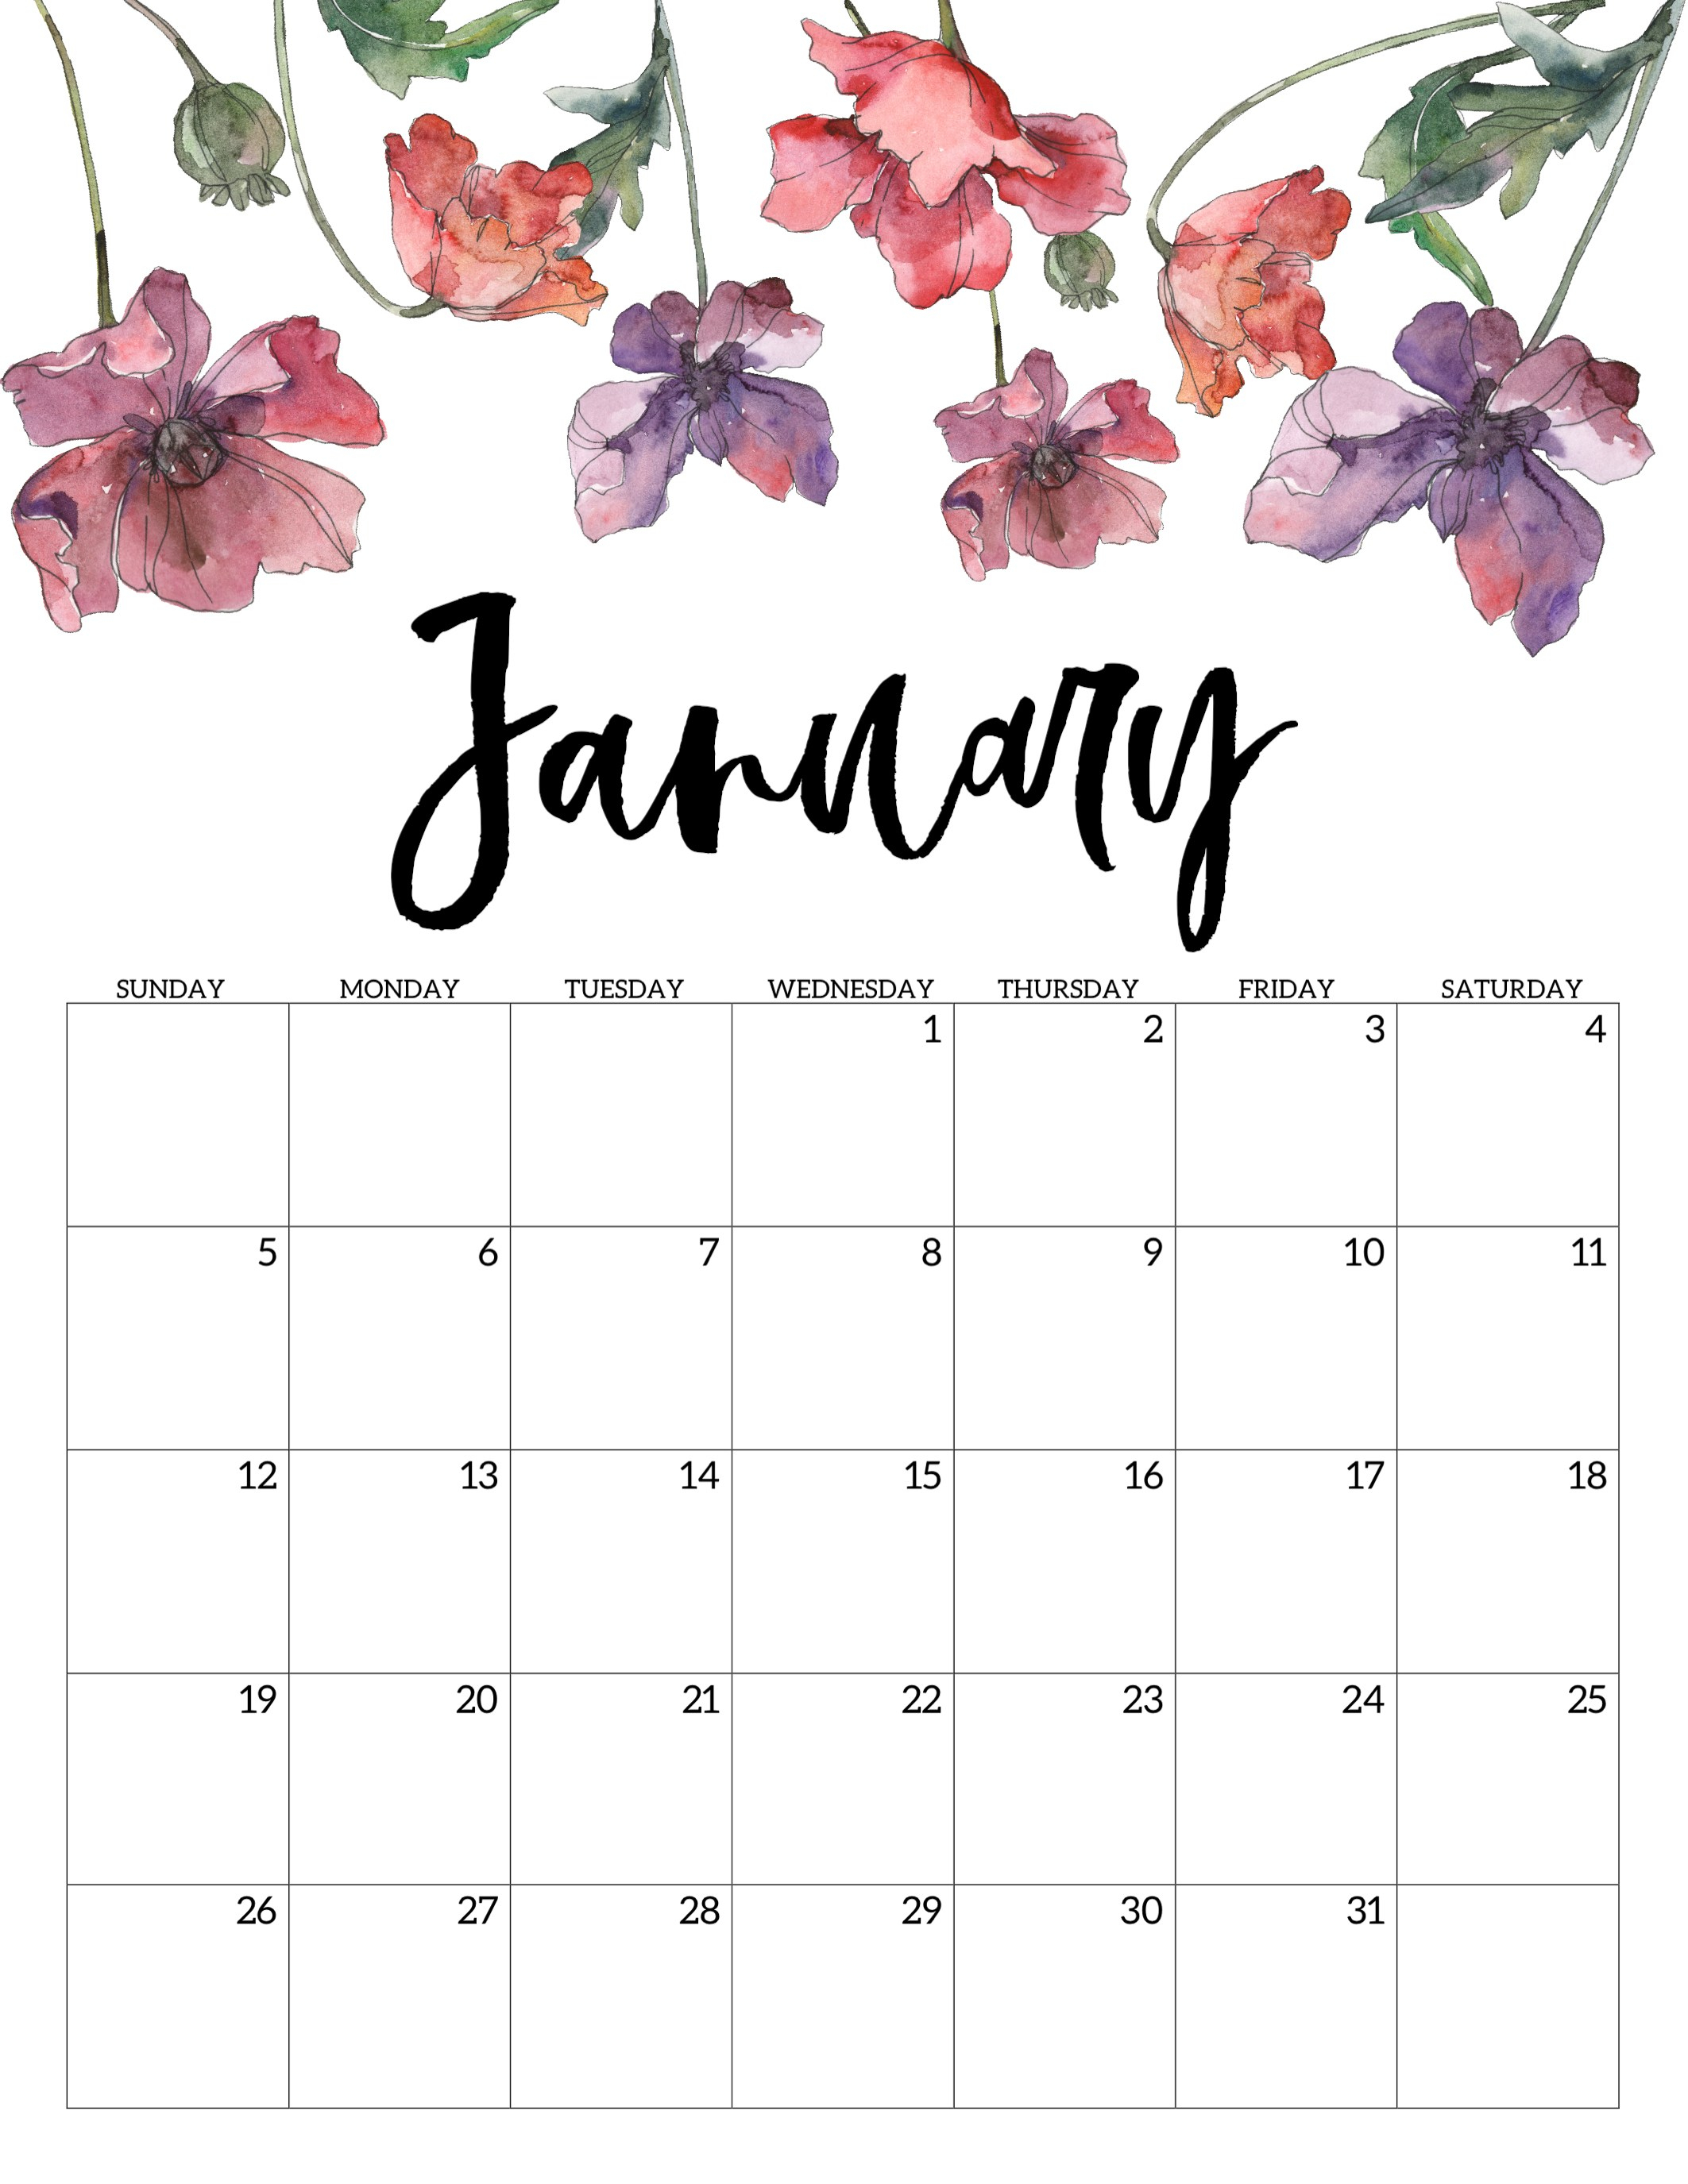 2020 Free Printable Calendar - Floral - Paper Trail Design throughout Blank Calendar Months For Year 2019-2020 Girly